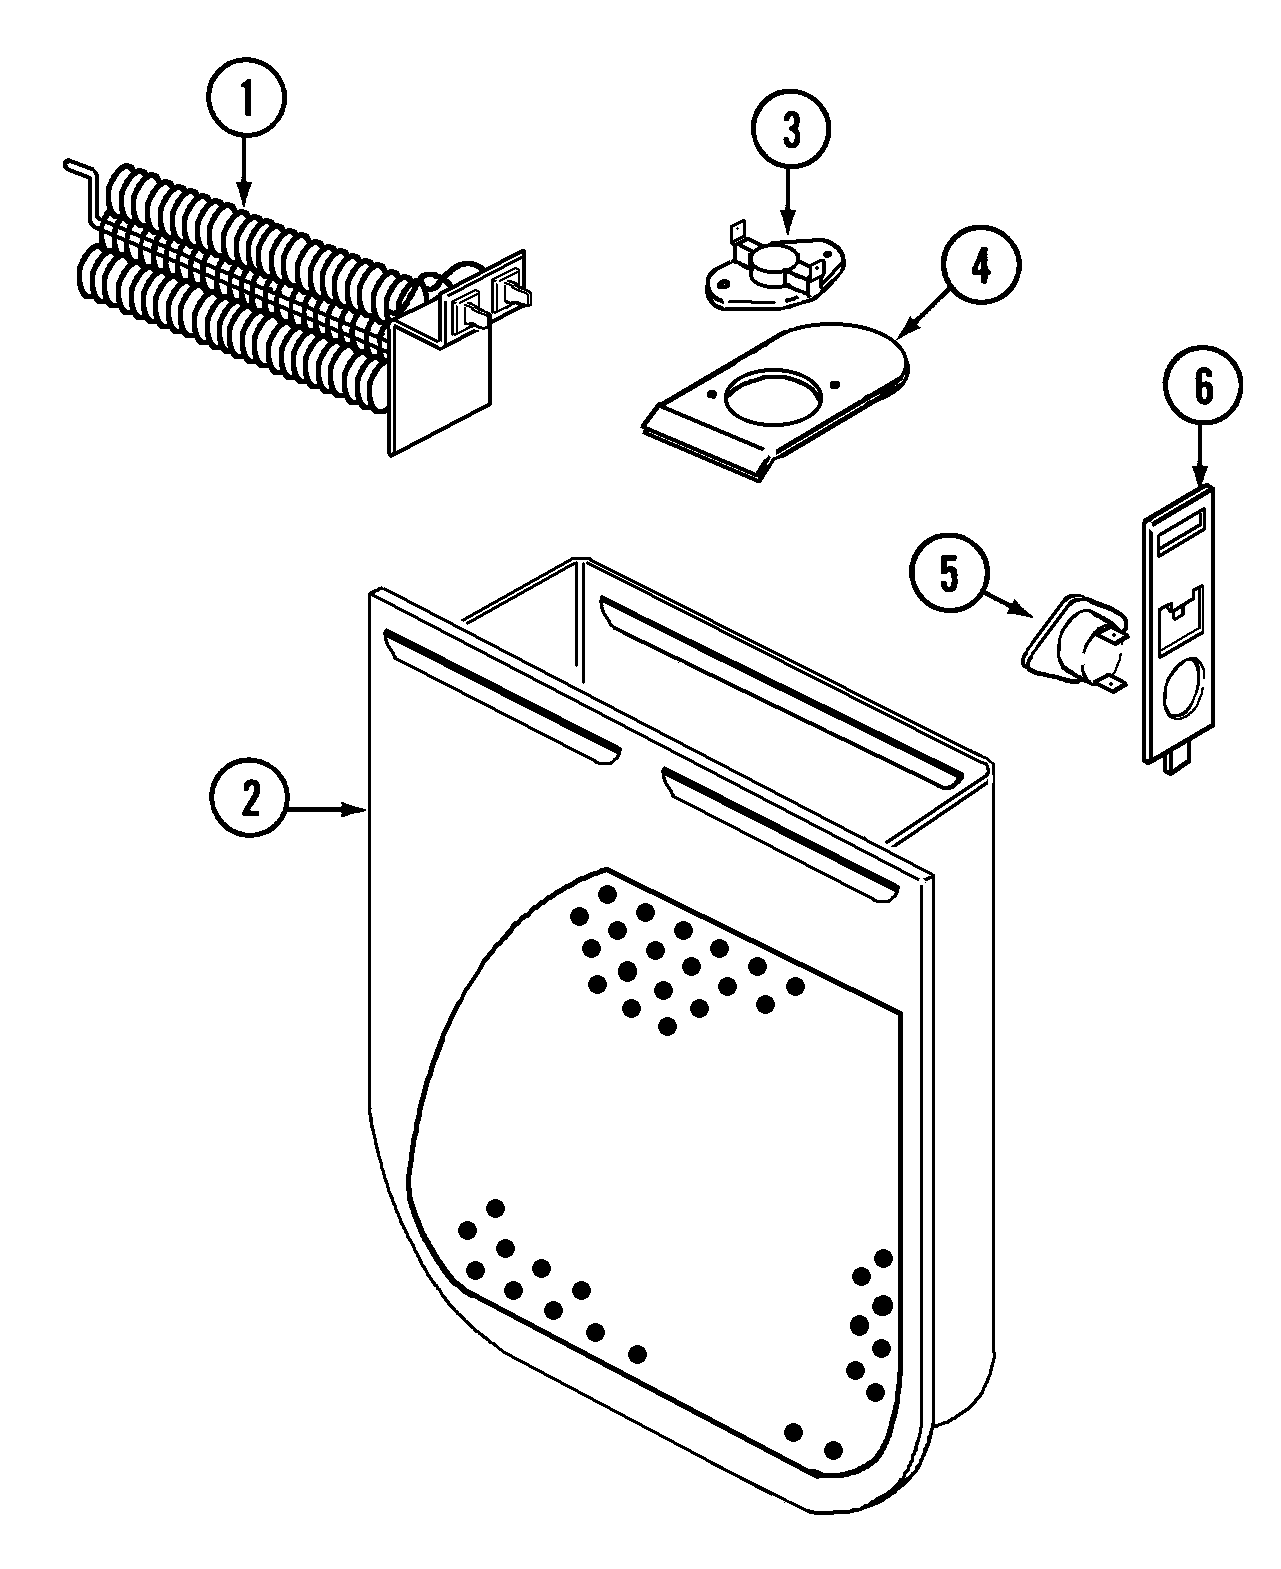 Admiral electric dryer wiring schematic frigidaire elec dryer m0604112 00006 admiral electric dryer wiring schematichtml 4l5t 18c815 ag wiring diagram